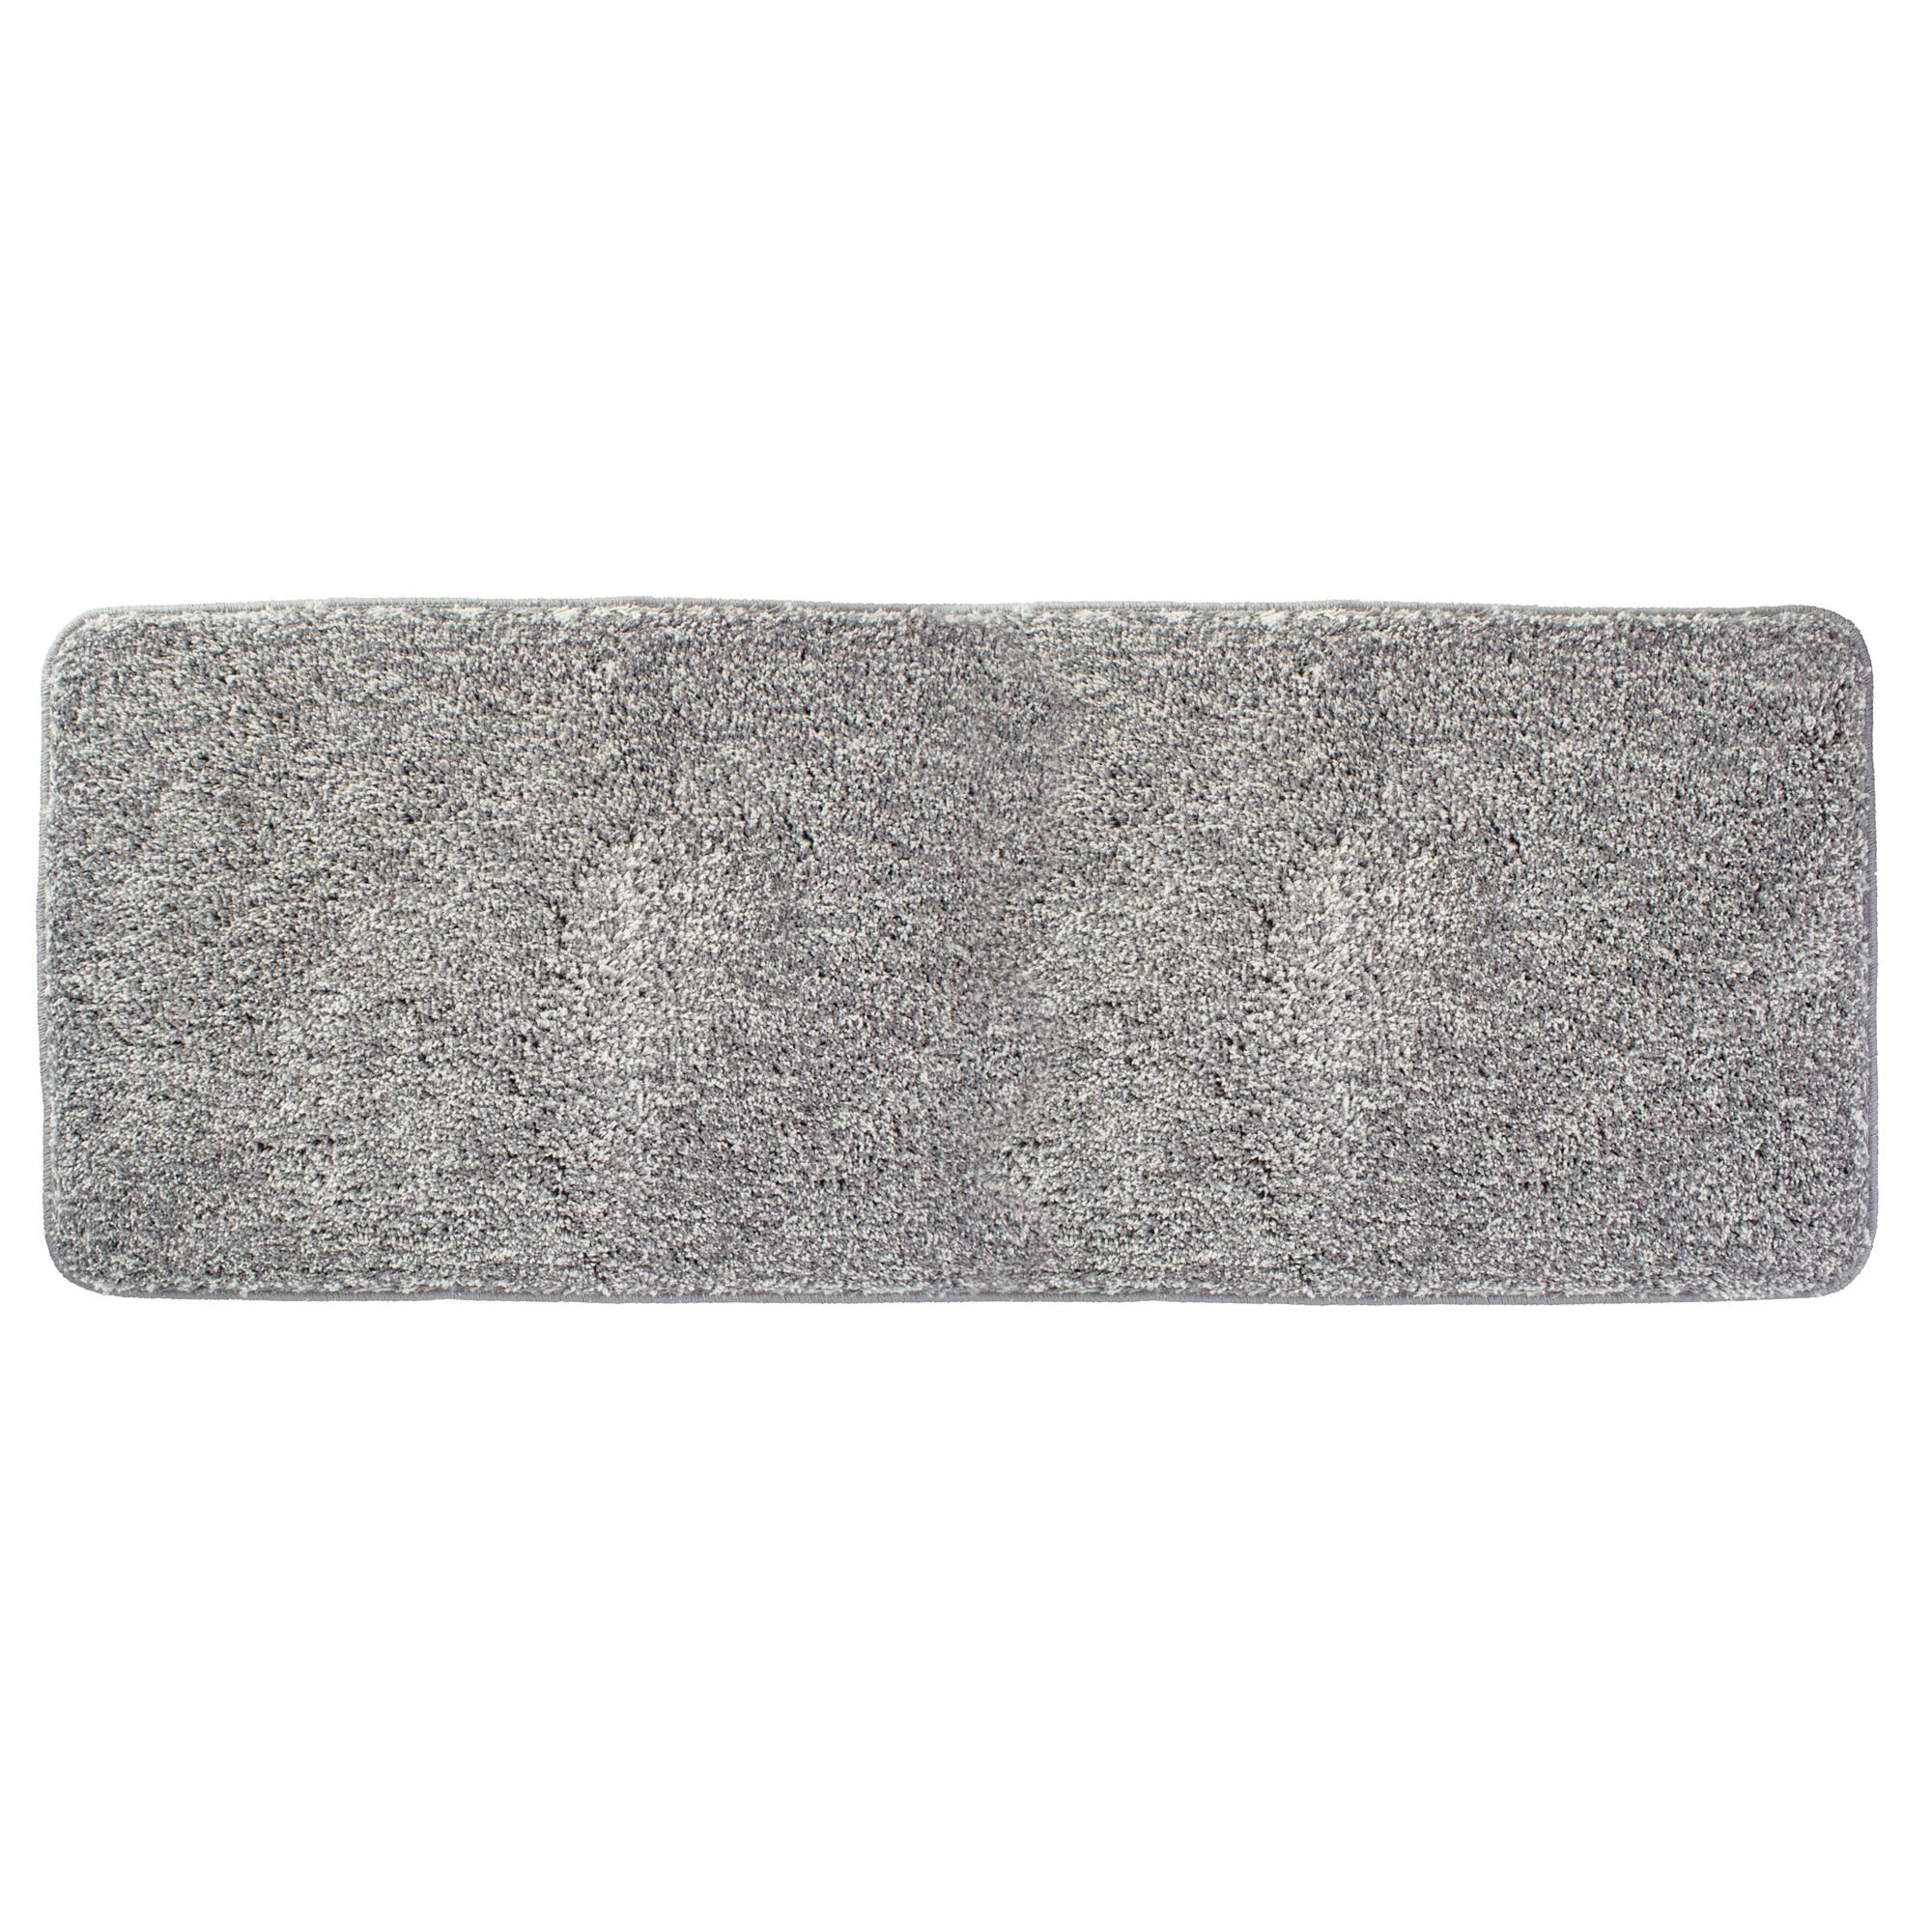 mDesign Soft Microfiber Polyester Non-Slip Extra-Long Spa Mat/Runner, Plush Water Absorbent Accent Rug for Bathroom Vanity, Bathtub/Shower, Machine Washable - 60'' x 21'' - Heathered Gray